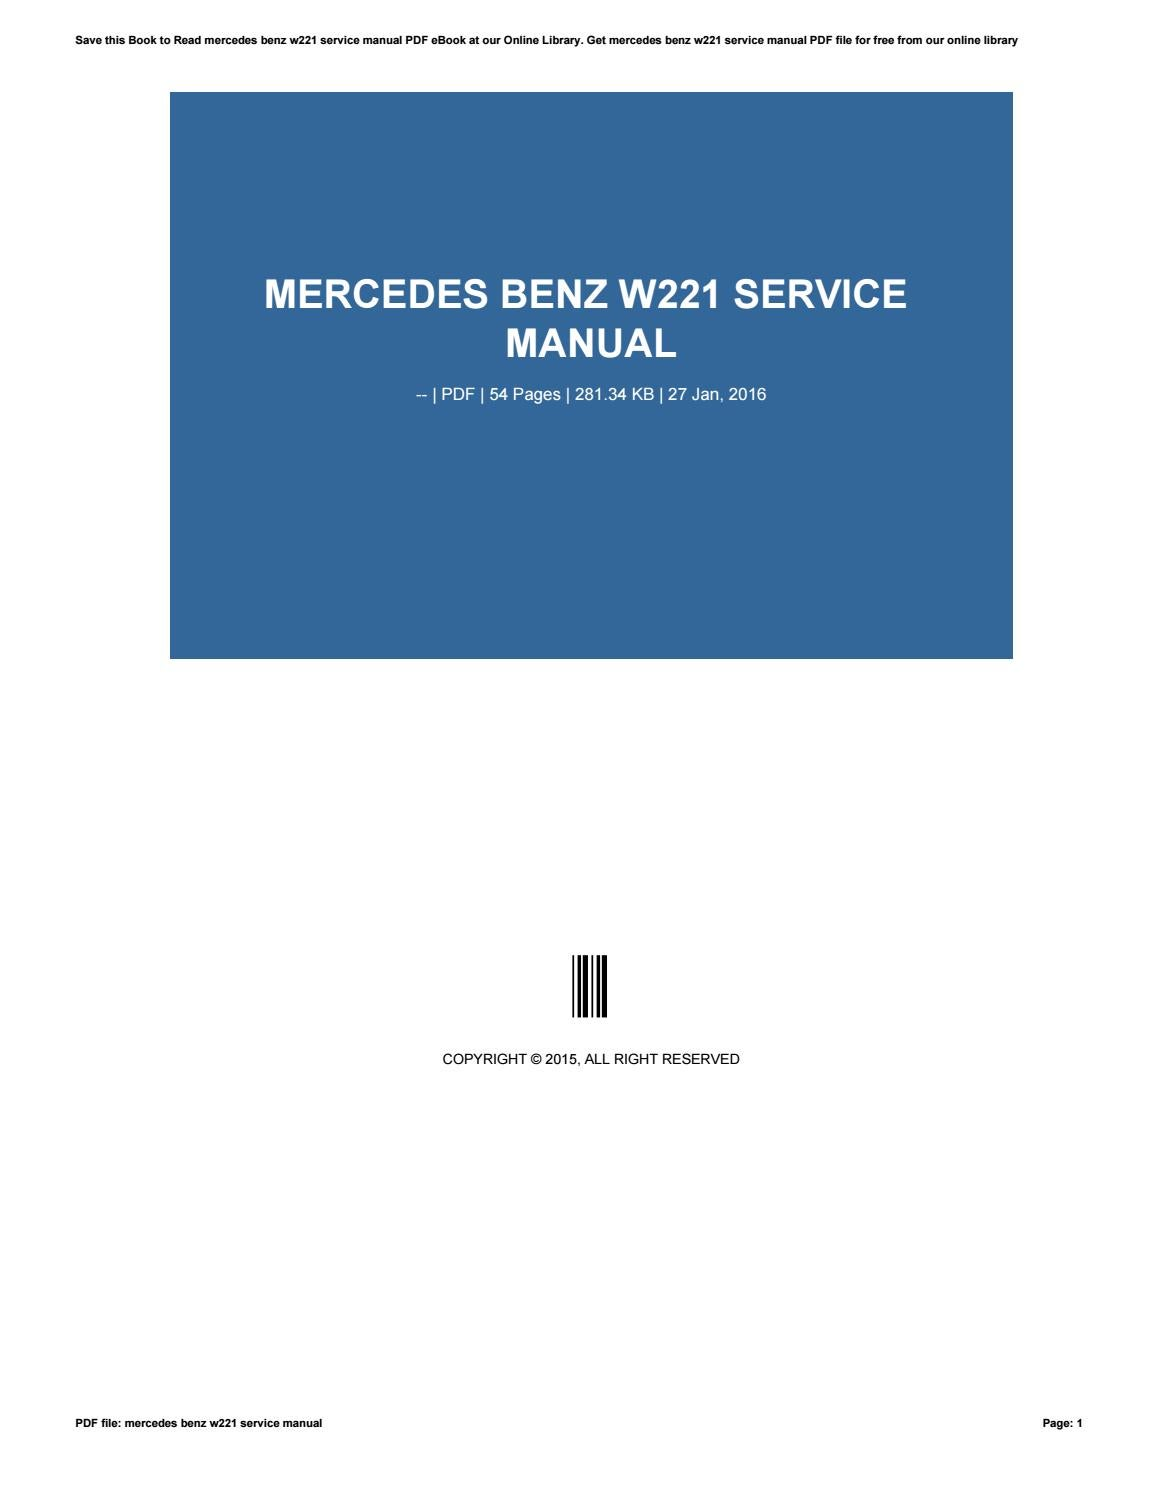 Mercedes benz w221 service manual by mail6721 issuu.